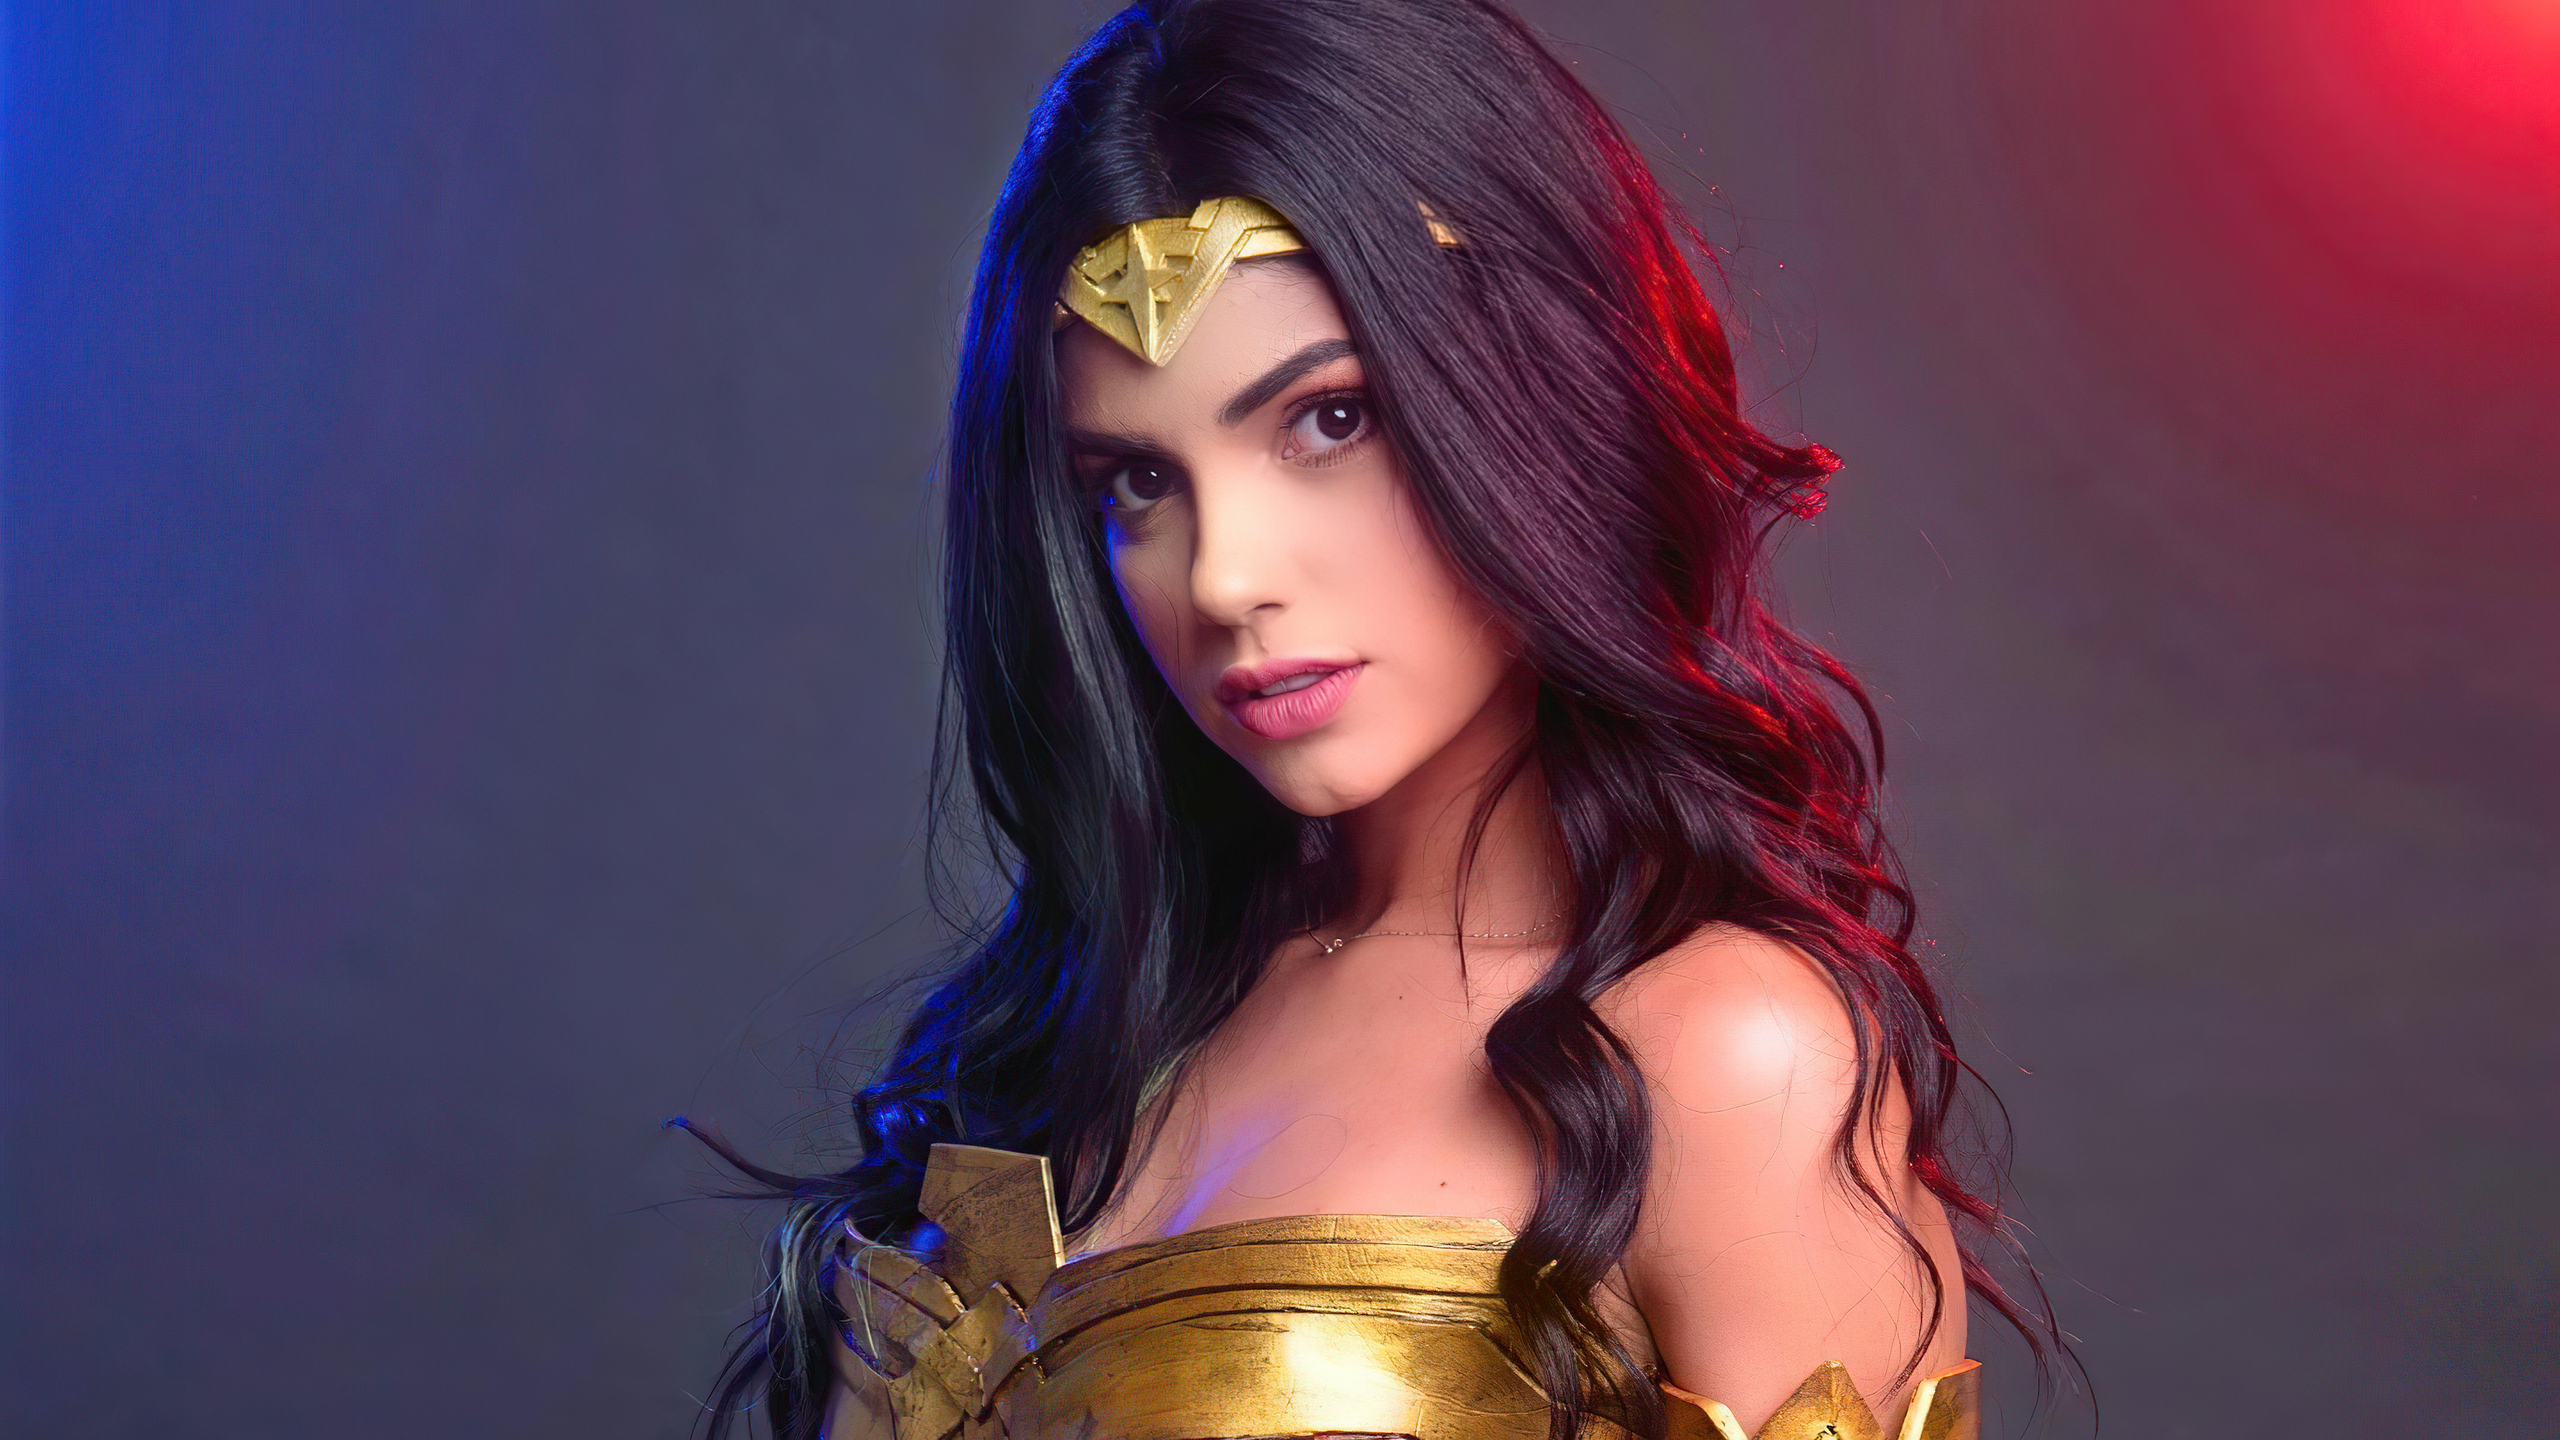 wonder-woman-cosplay-girl-4k-3g.jpg